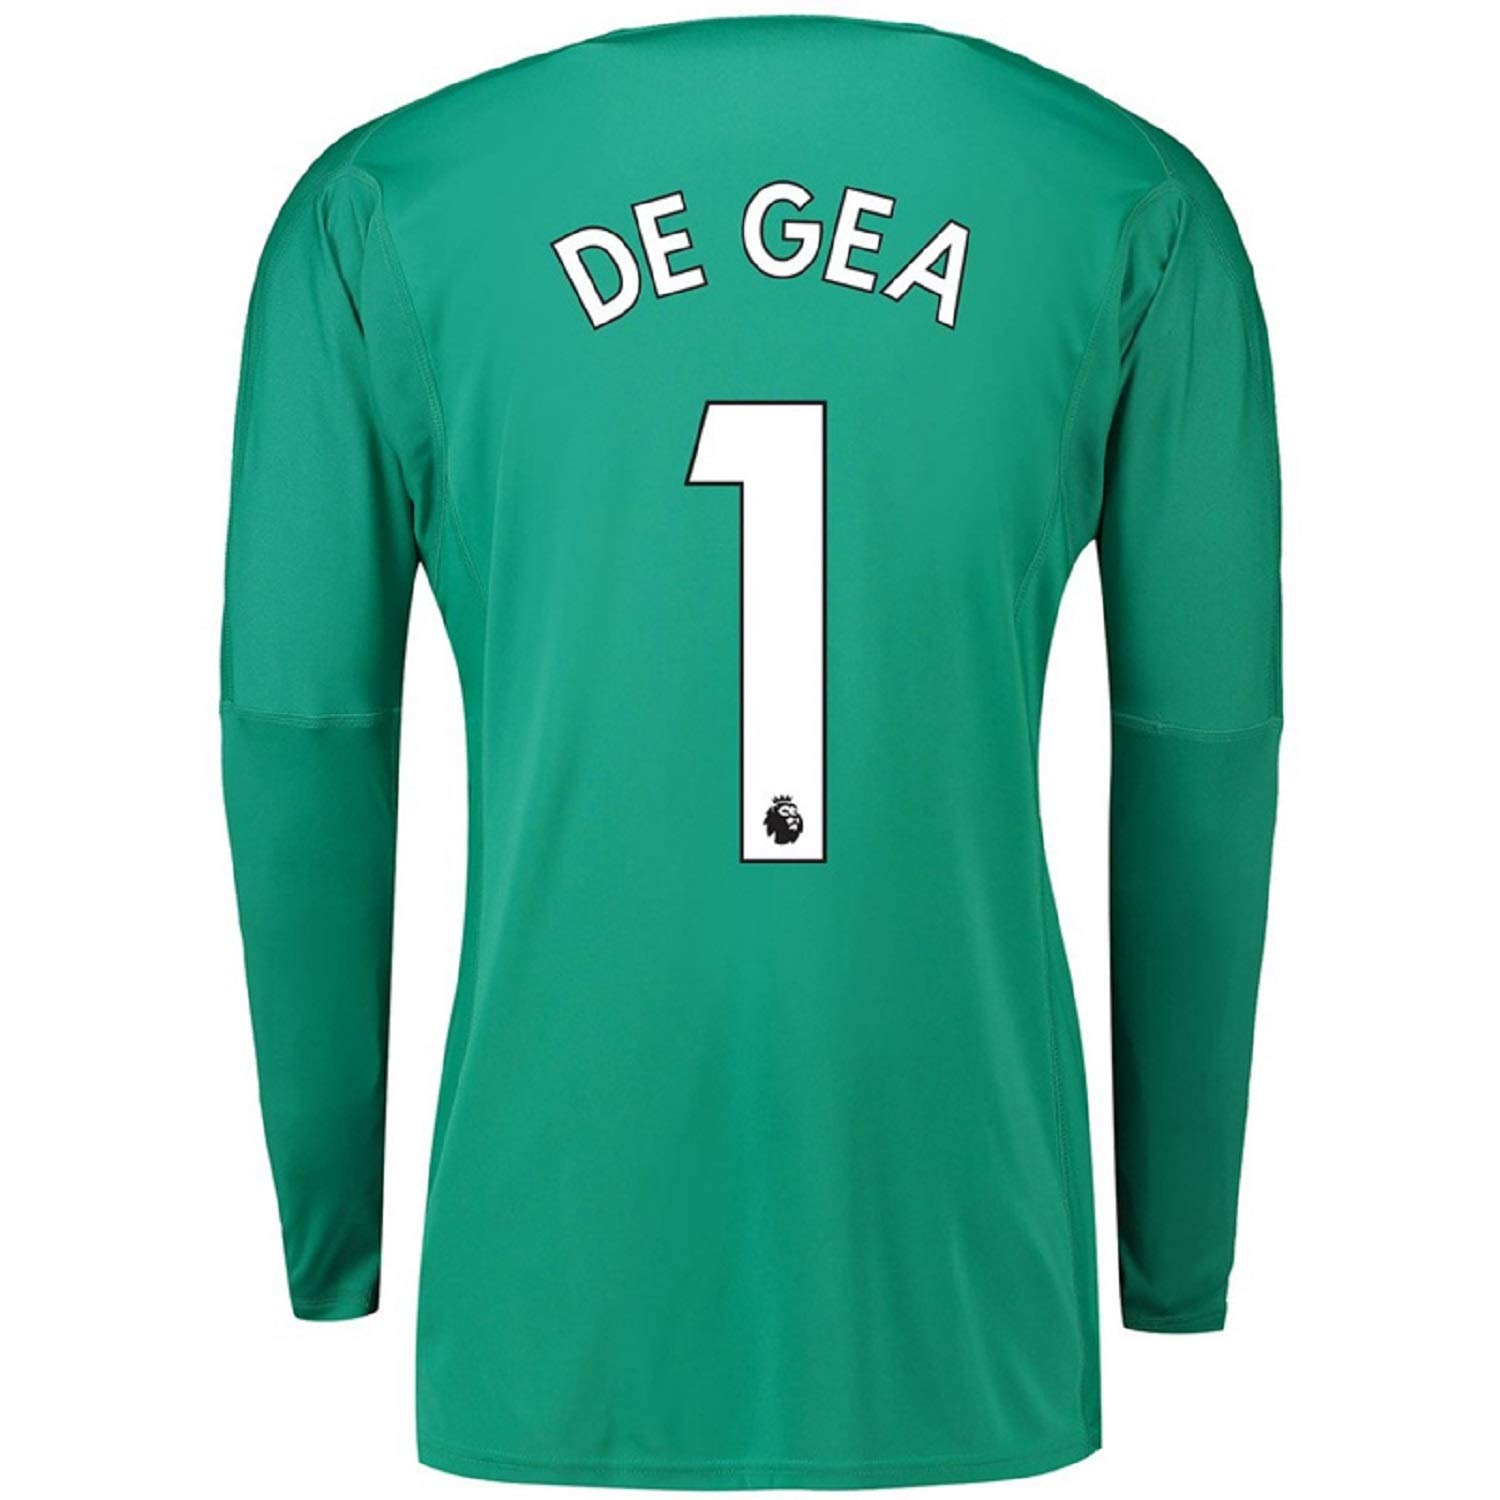 separation shoes da376 c3d69 Amazon.com: De GEA #1 Manchester United 2018/2019 Mens Home ...